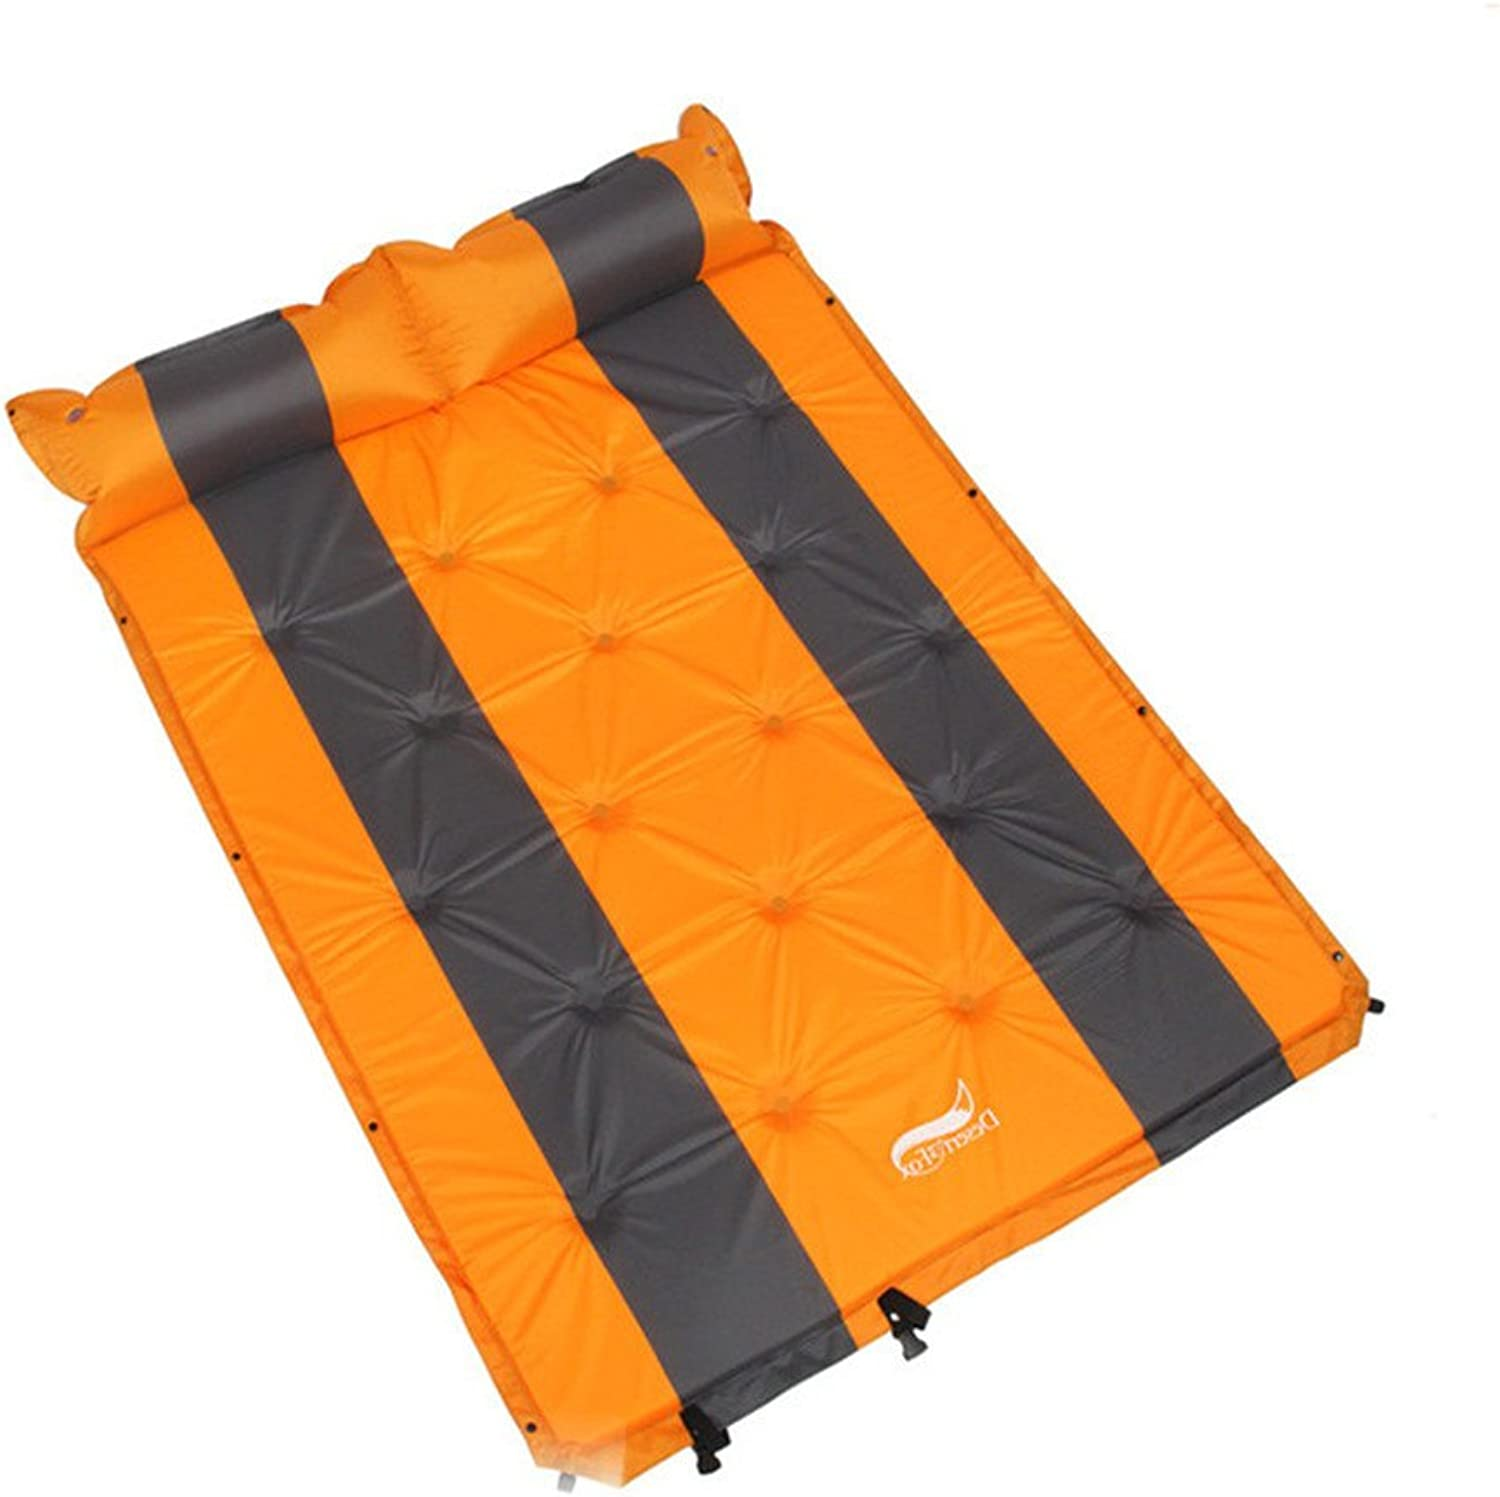 Quick Flow Valve with Attached Inflatable Pillow for Outdoor Camping and Backpacking Double Inflatable Sleeping Pad,Self-Inflating Air Sleeping Pad, Camping Supplies